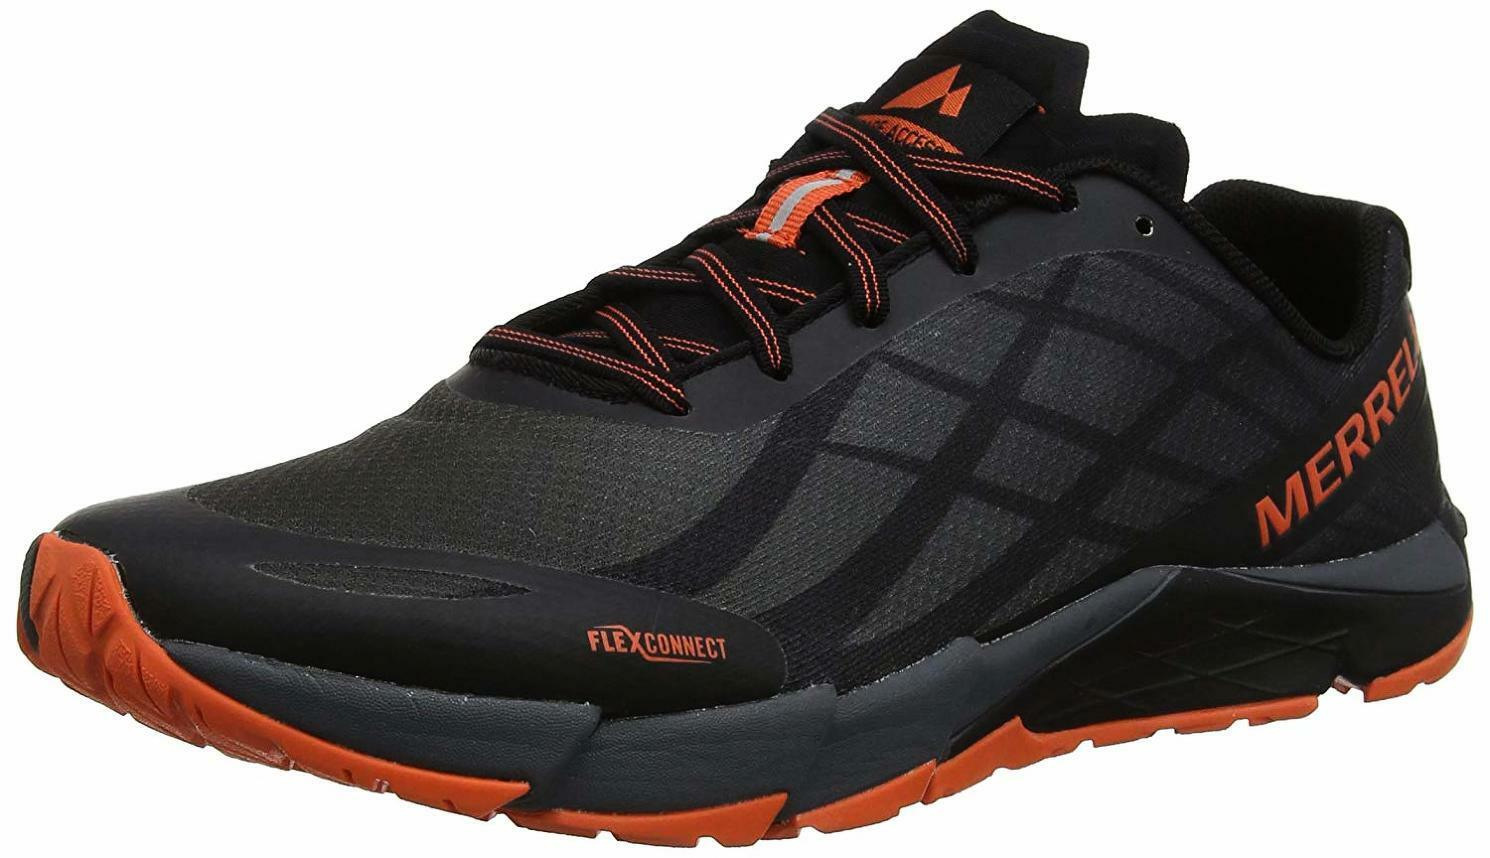 Homme Merrell Bare Access Flex Trail courirner-Choisir Taille couleur